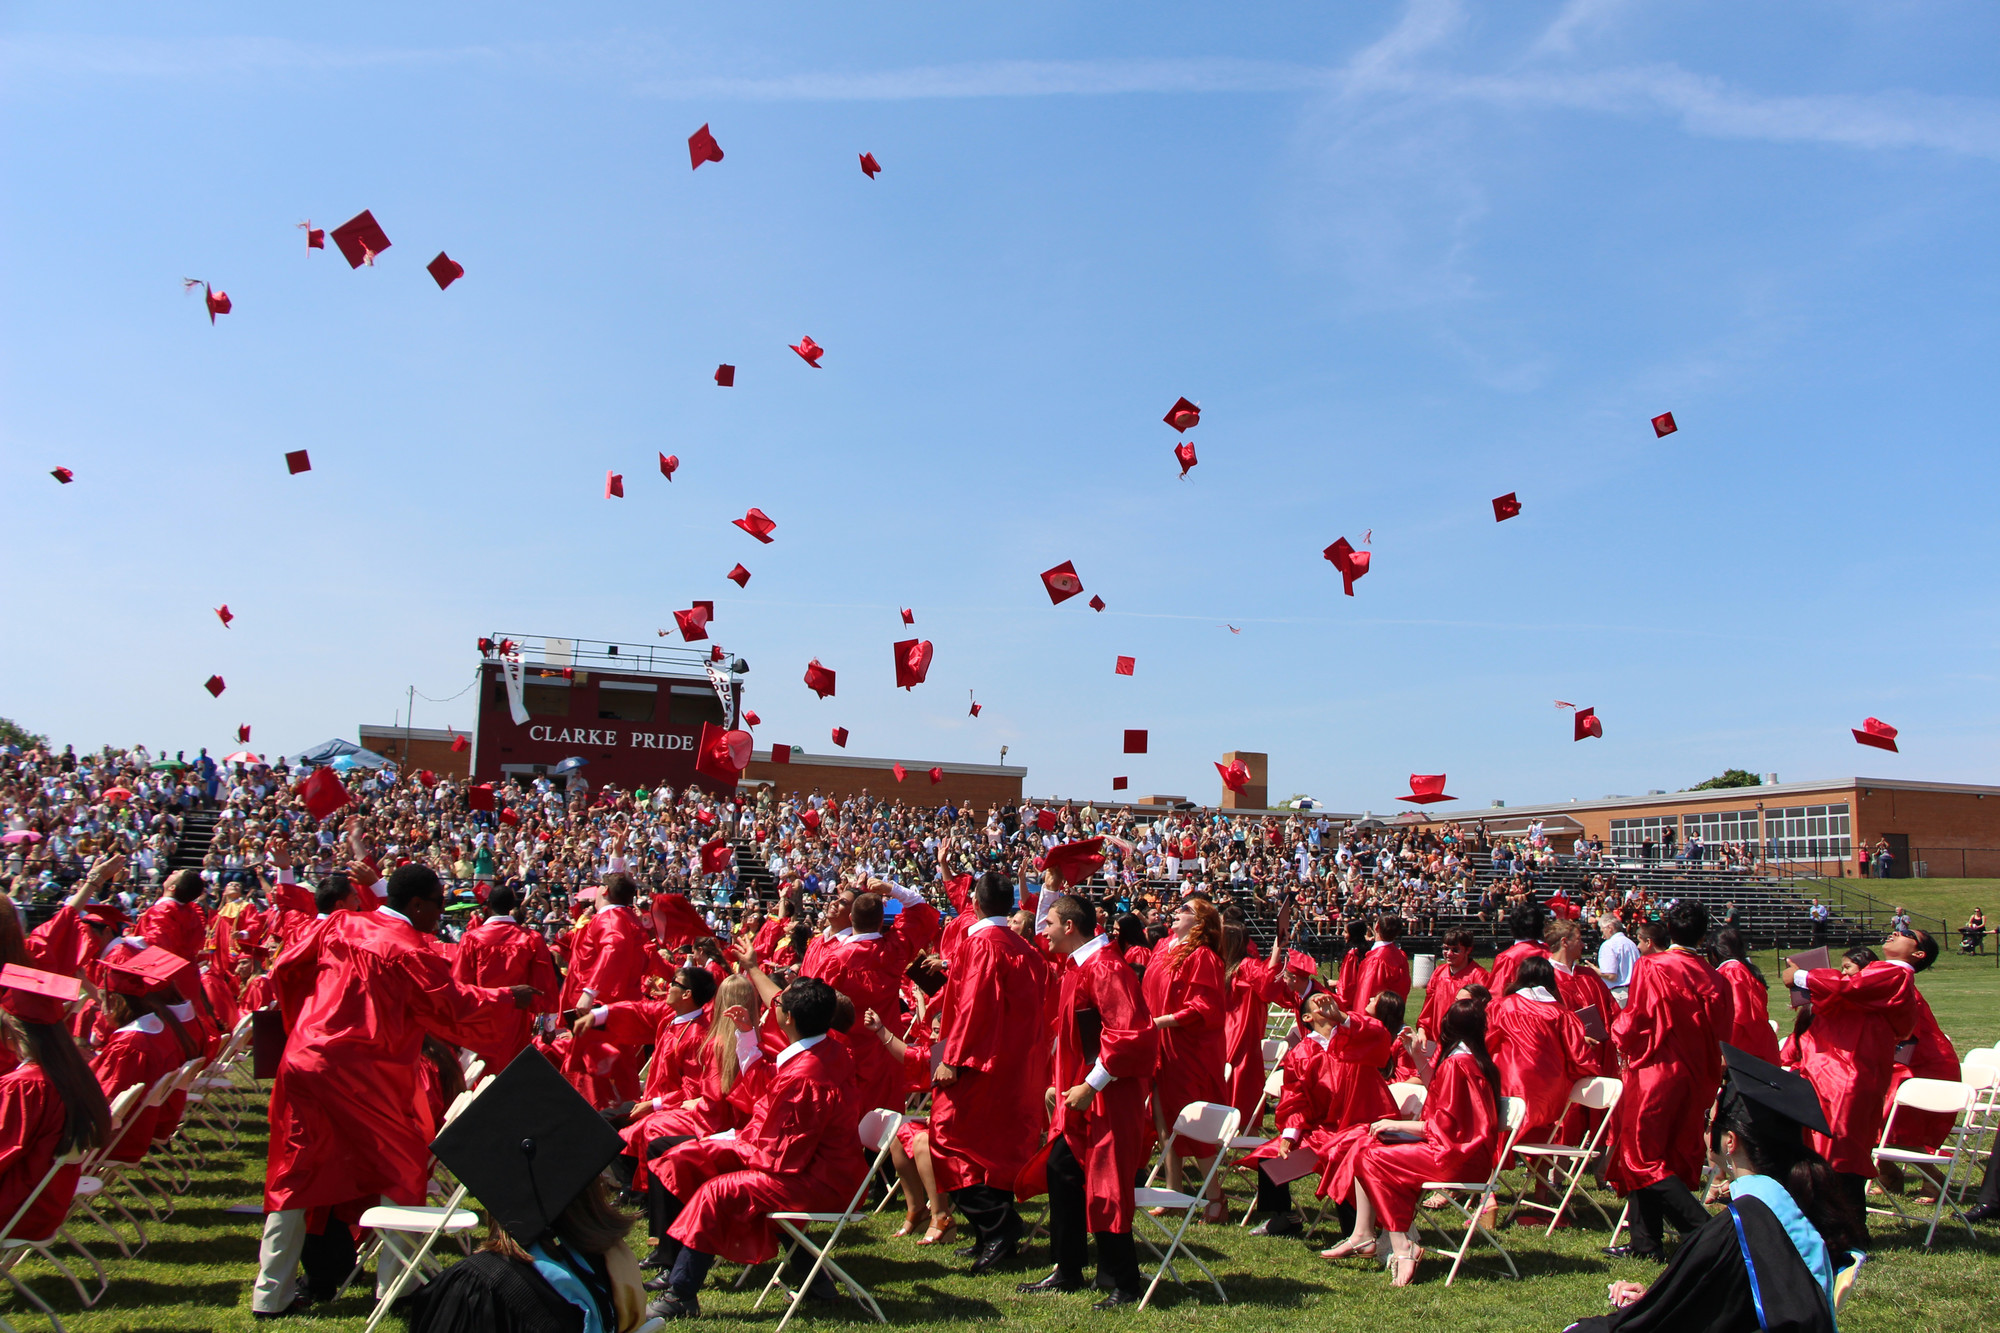 It was Hats Off at W.T. Clarke High School last Sunday as seniors sent their mortarboards flying.